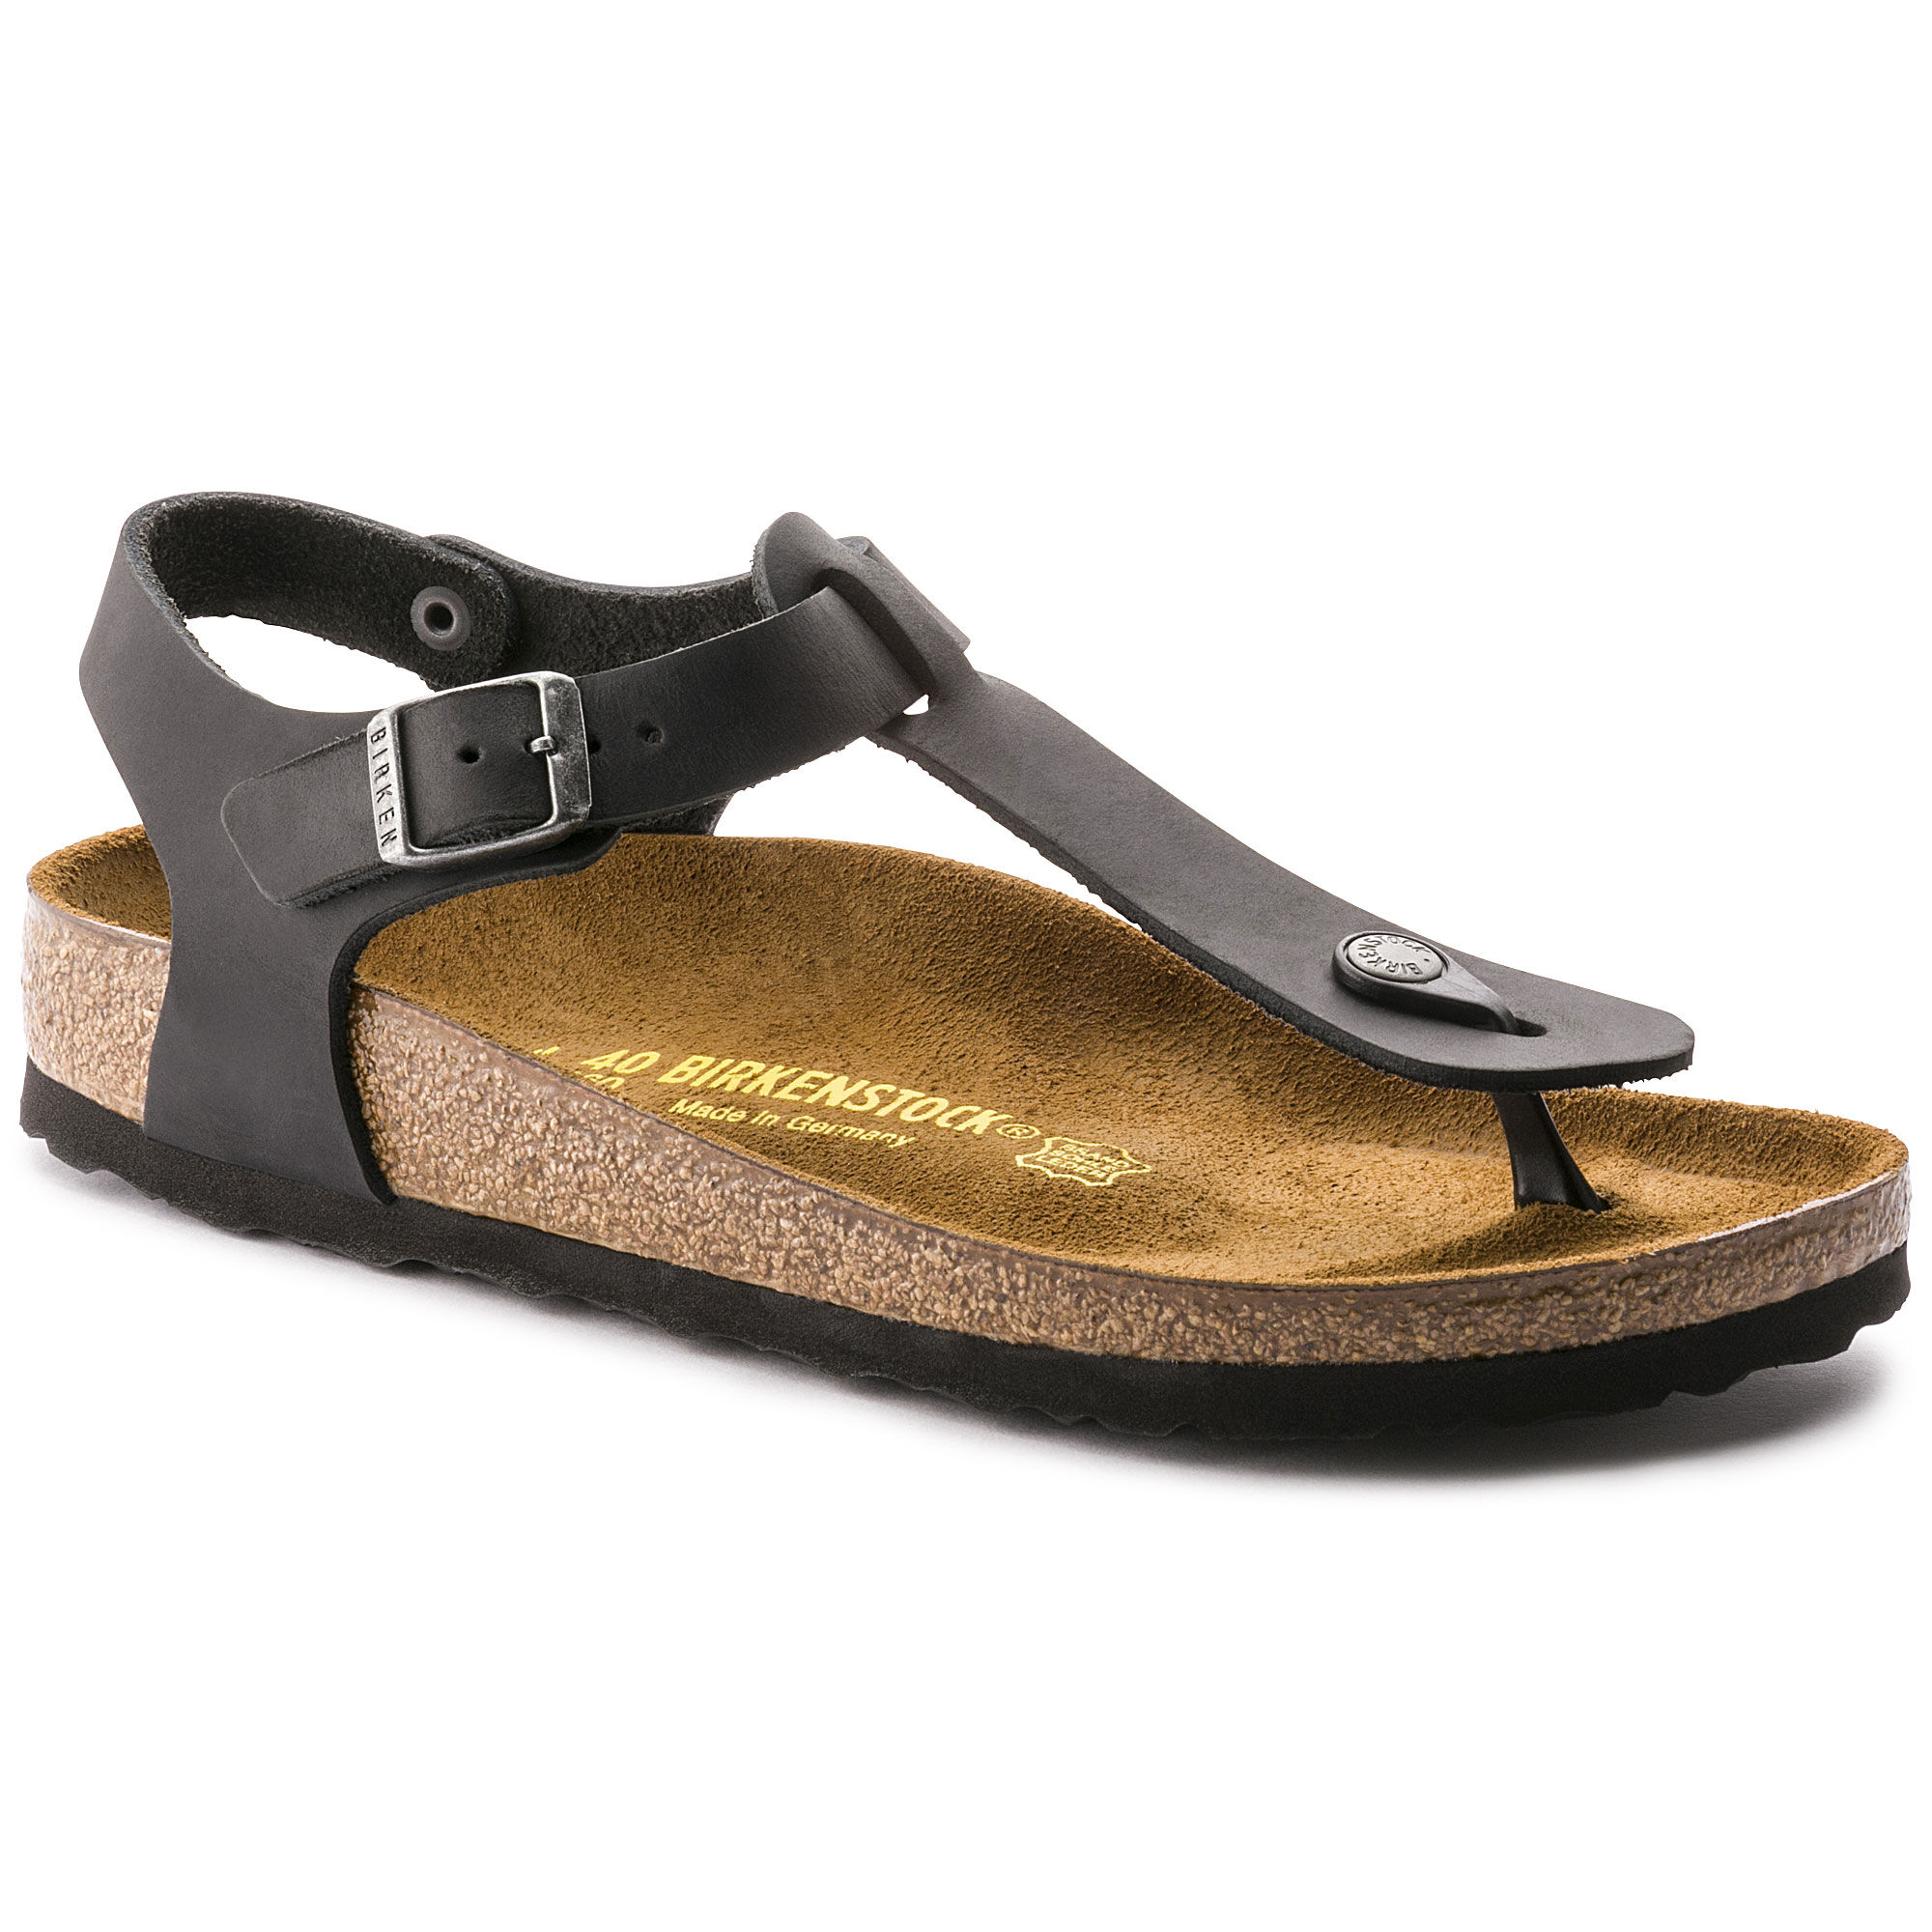 Birkenstock Kairo Oiled Leather Black 0147113